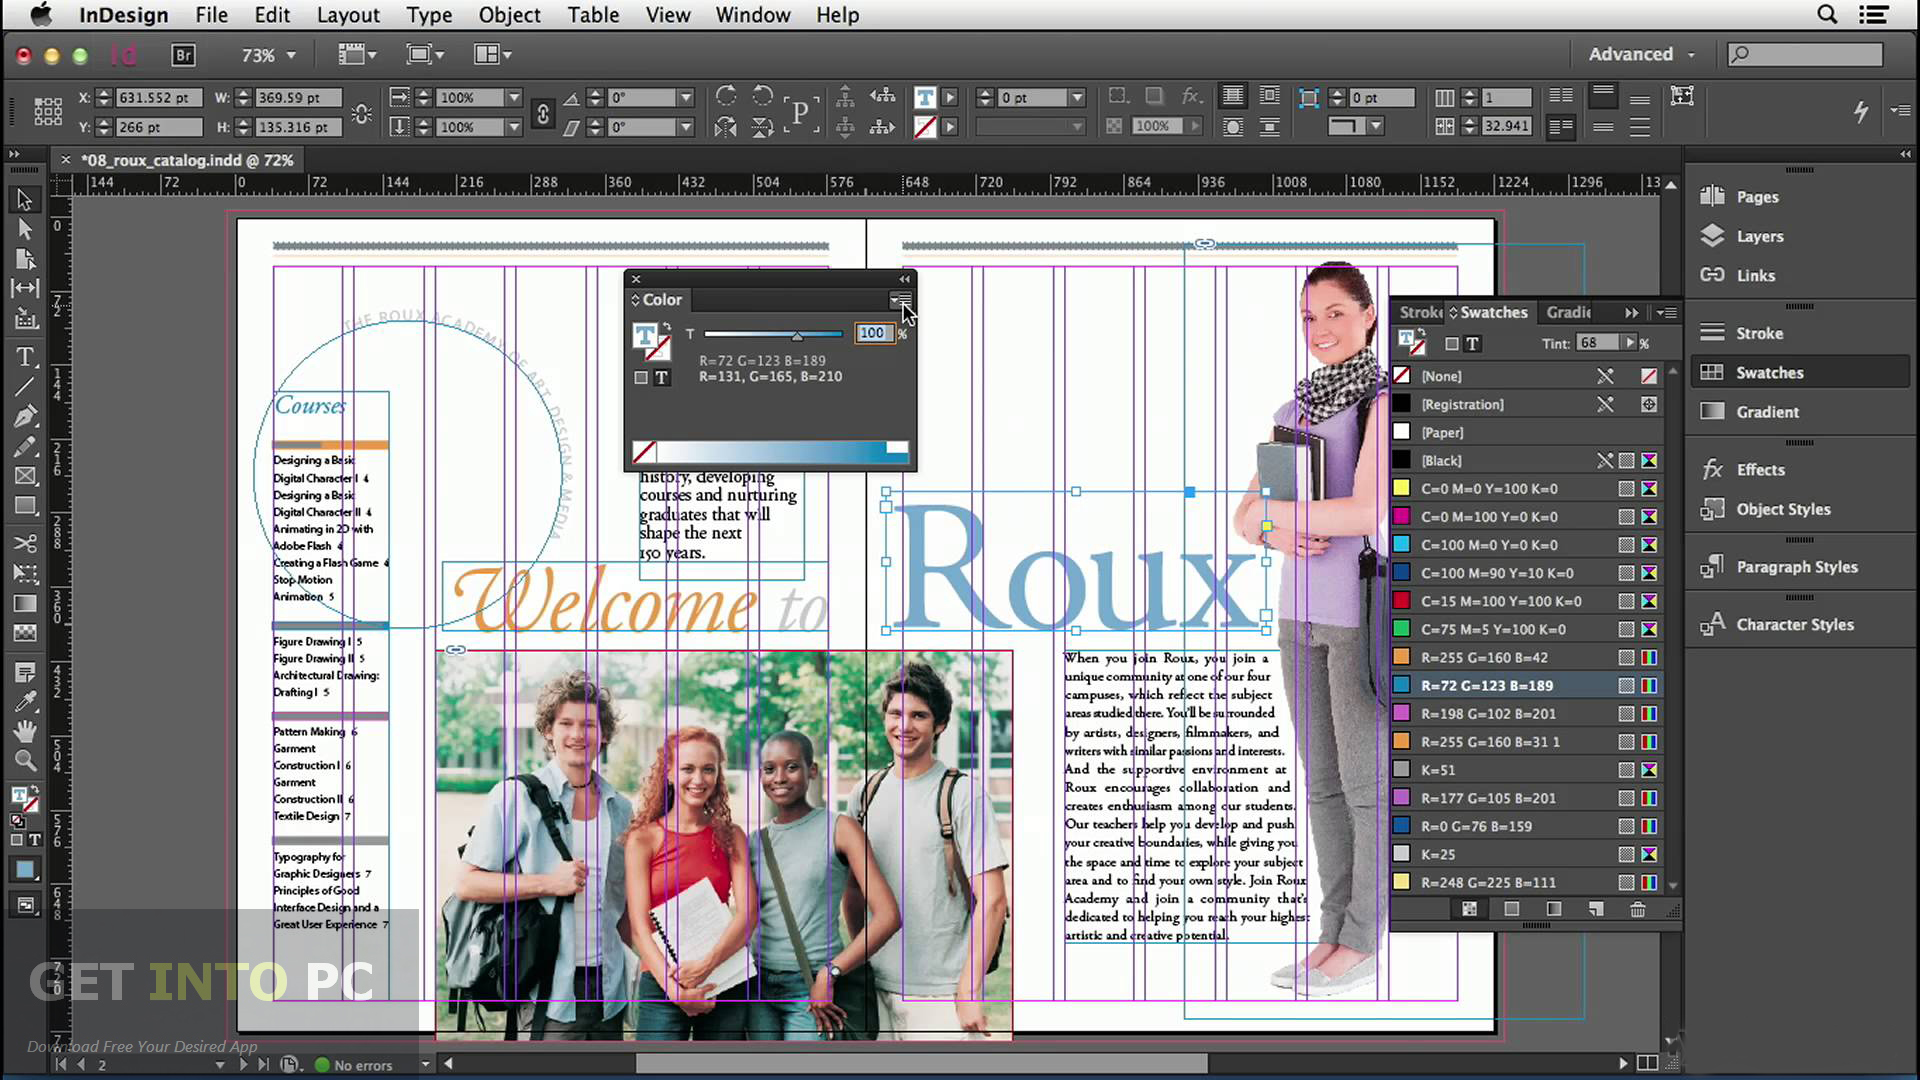 Adobe InDesign CC 2014 Latest Version Download